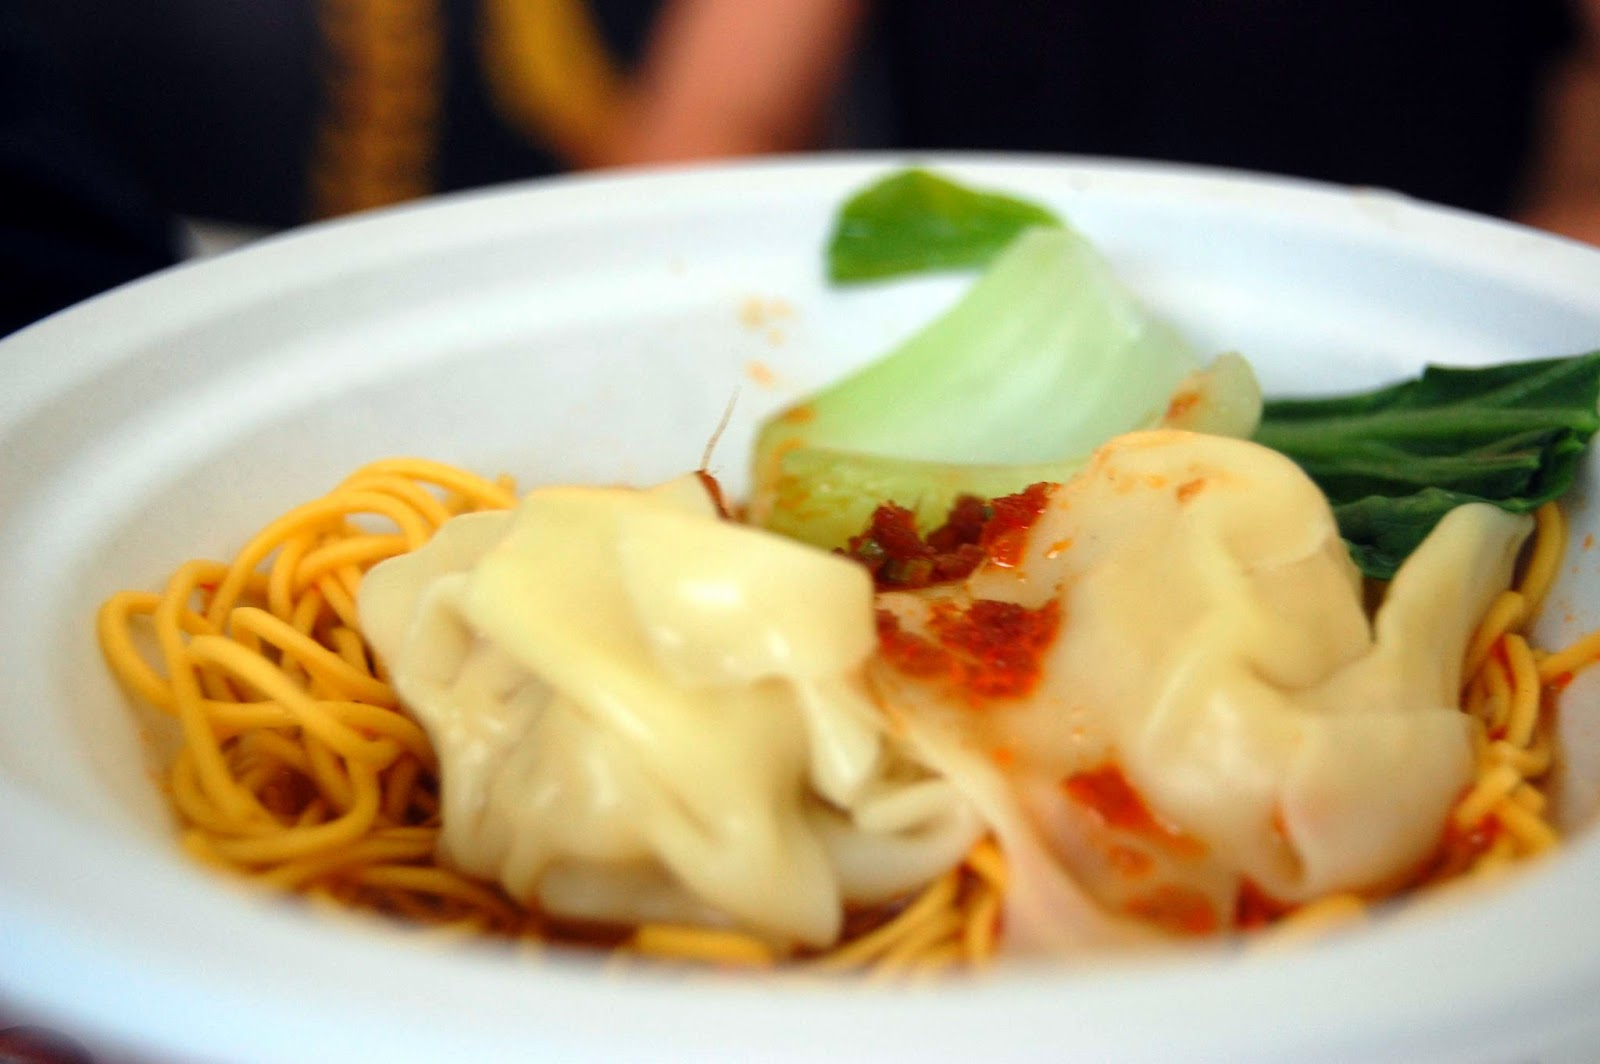 Stitch & Bear - Taste of Dublin 2014 - China Sichuan spicy dumplings